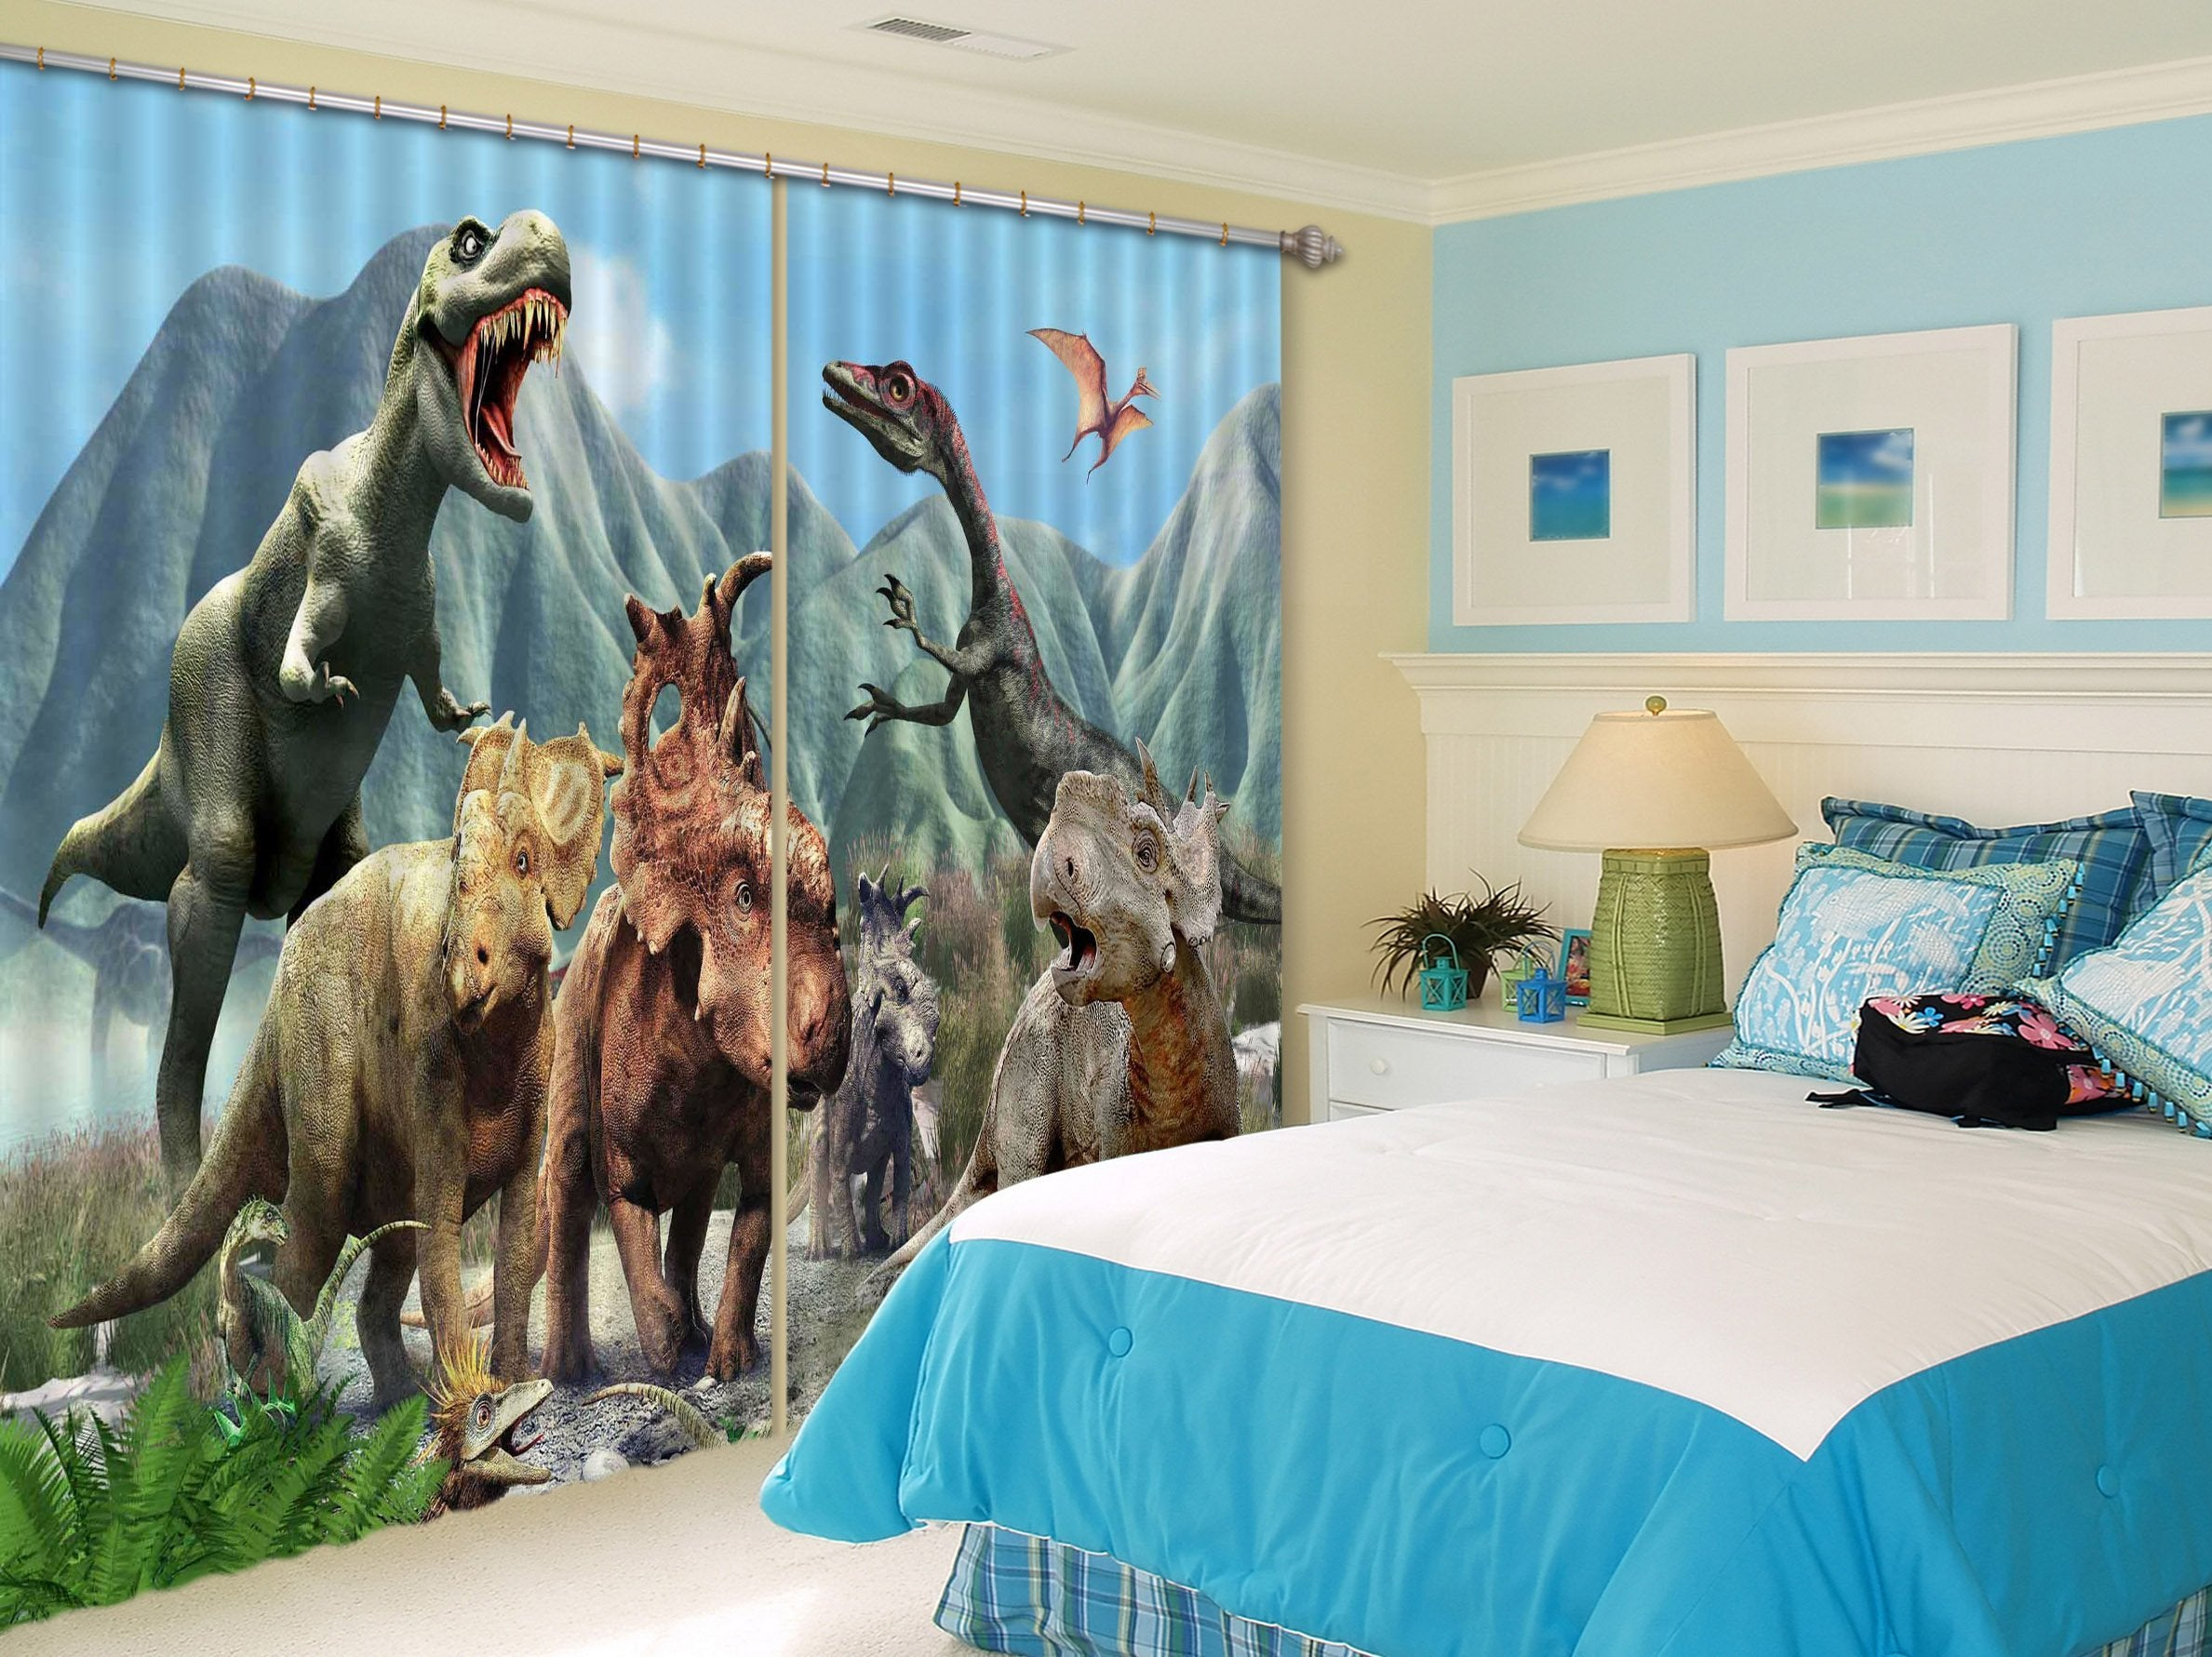 3D Mountains Dinosaurs 2243 Curtains Drapes Wallpaper AJ Wallpaper